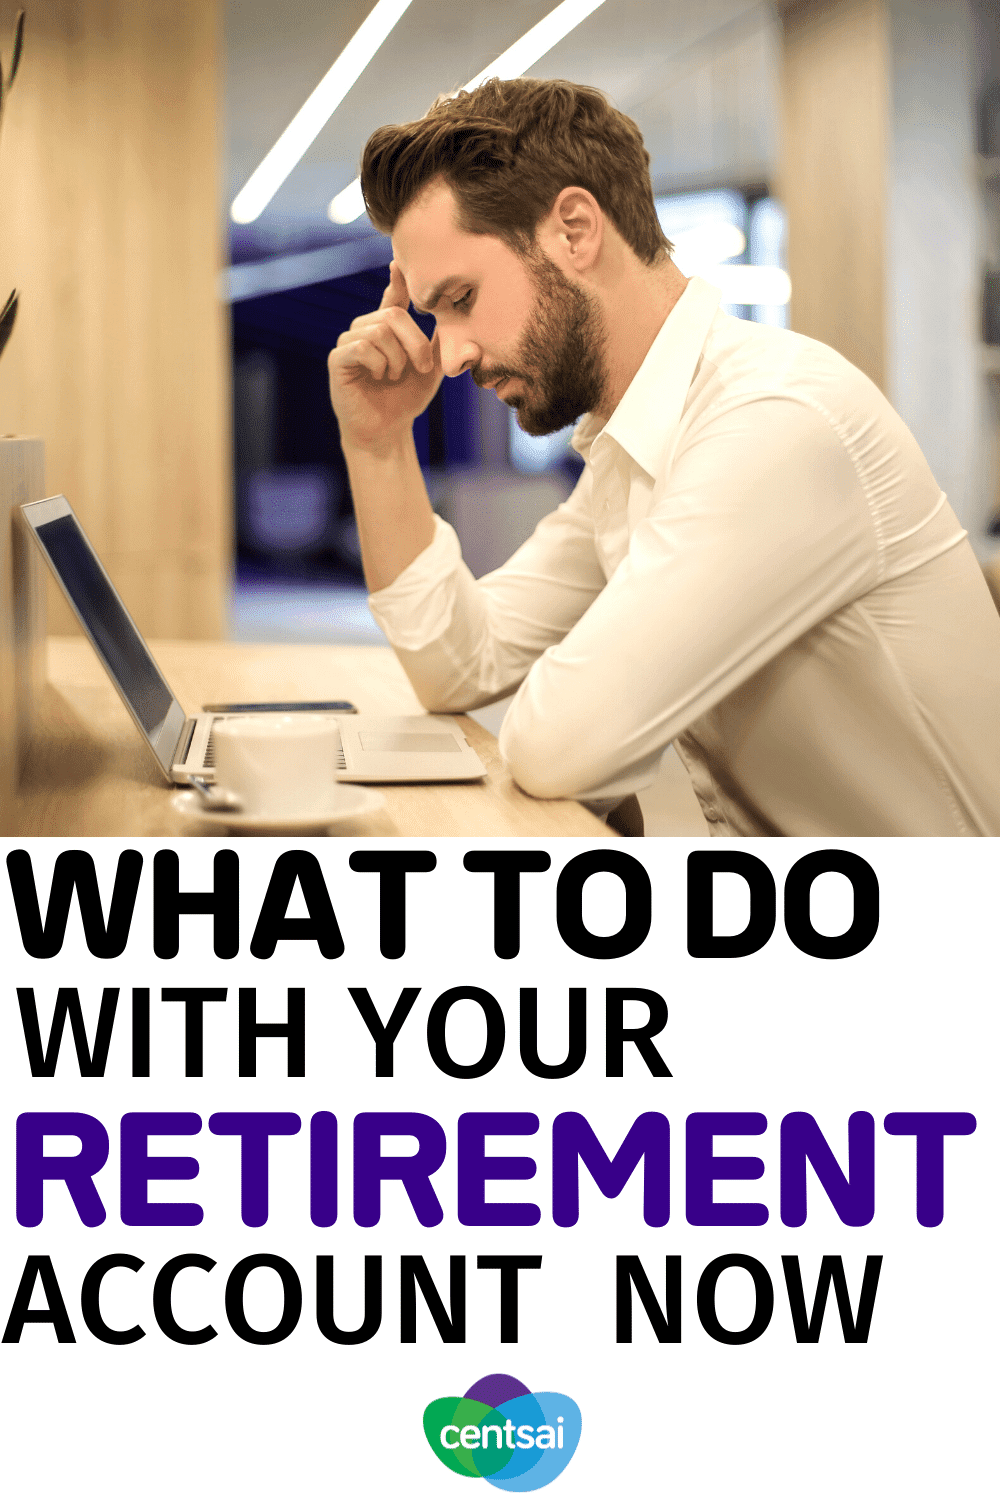 What to Do With Your Retirement Account Now